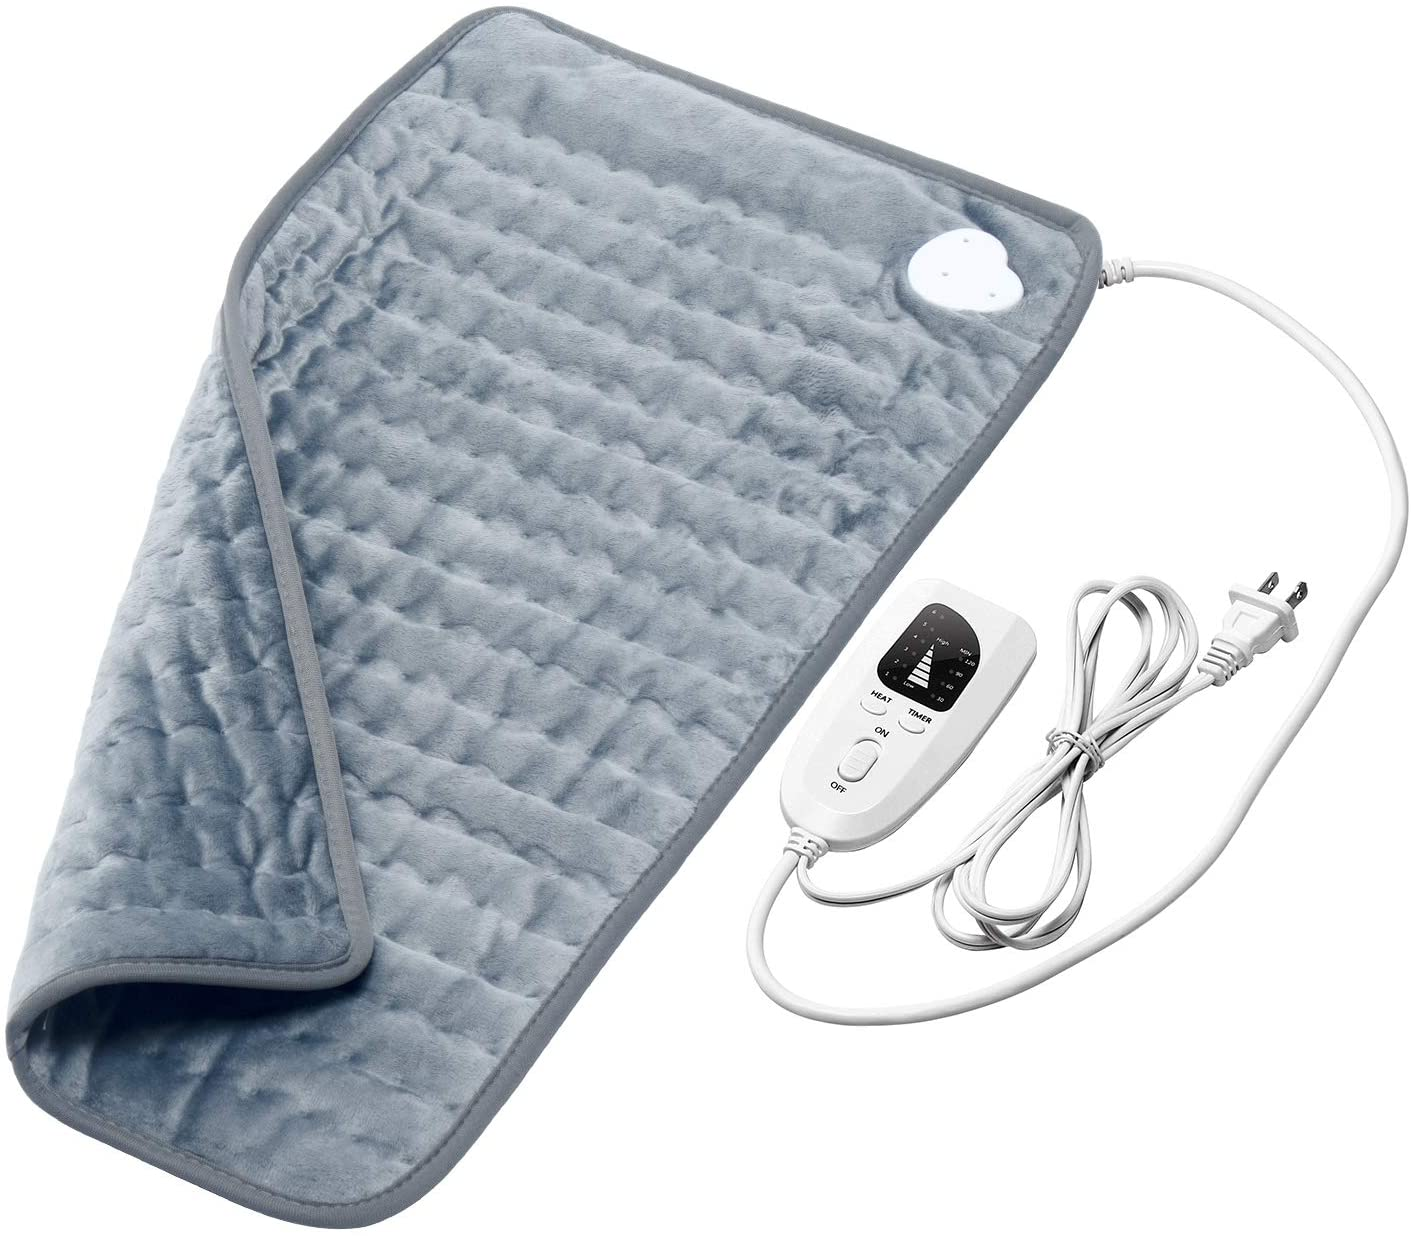 Heating Pad for Back Pain Relief - Electric Heat Therapy Blanket 12